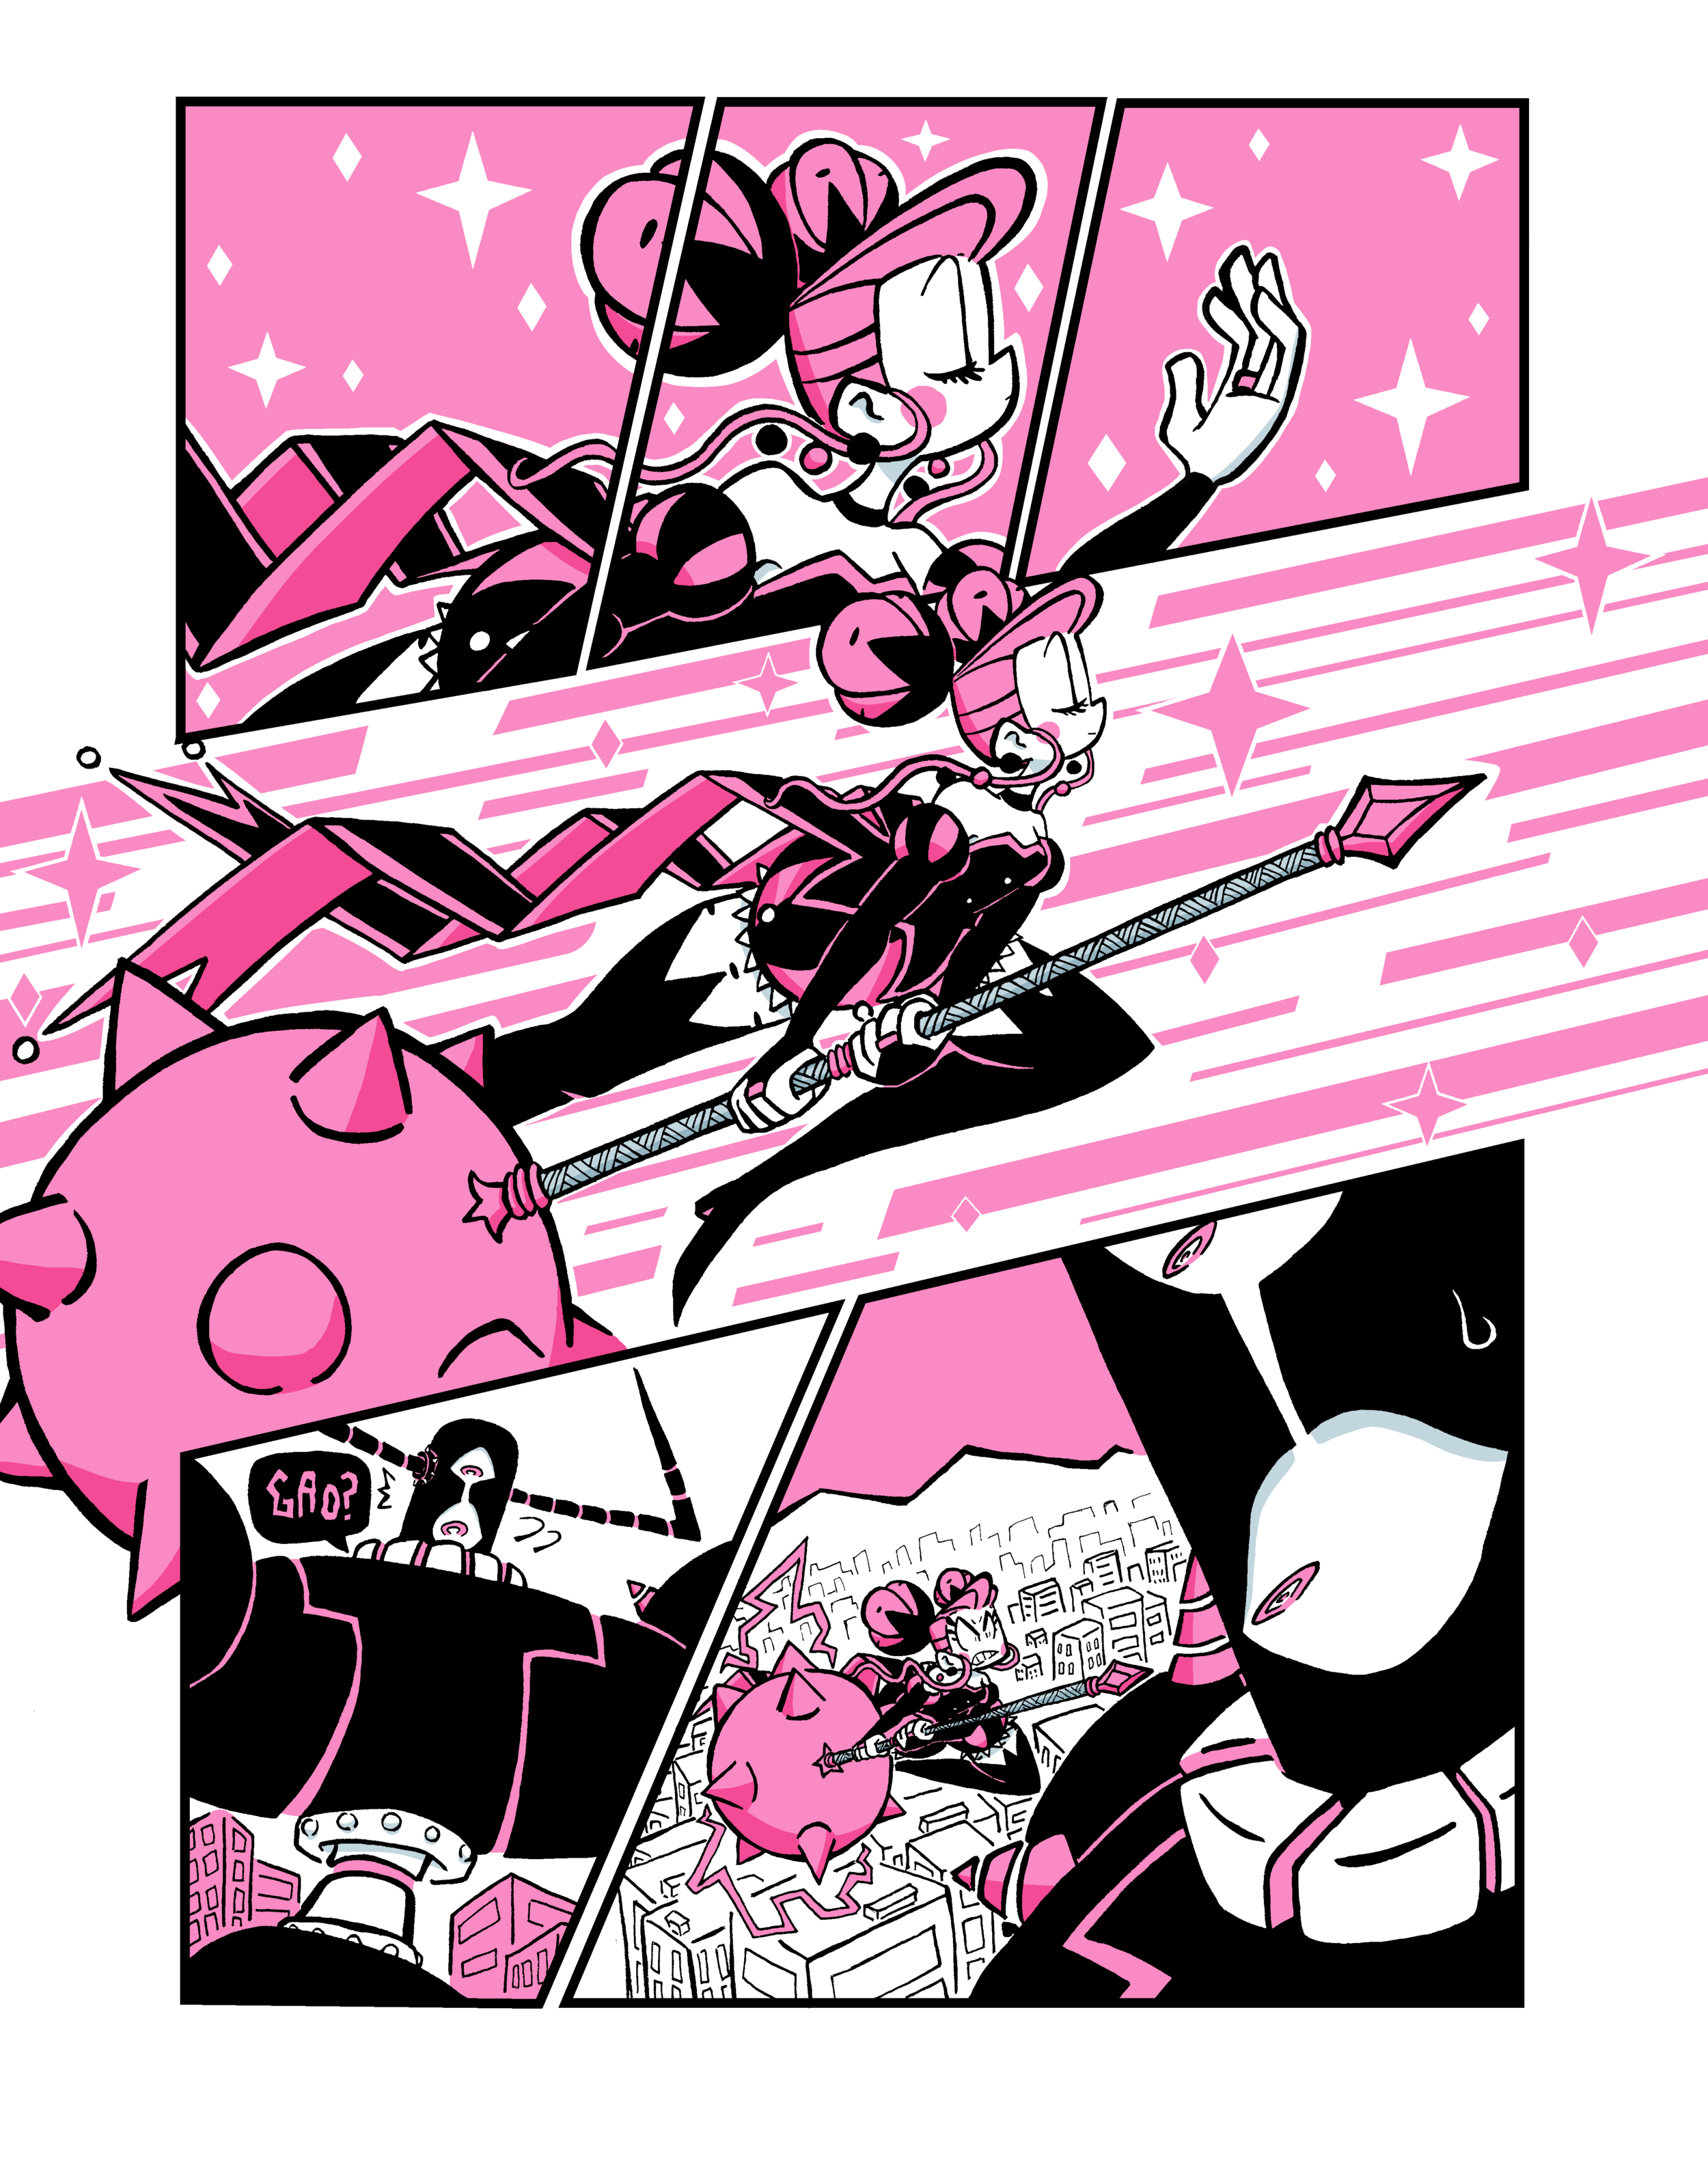 amgdoissue2page16.png